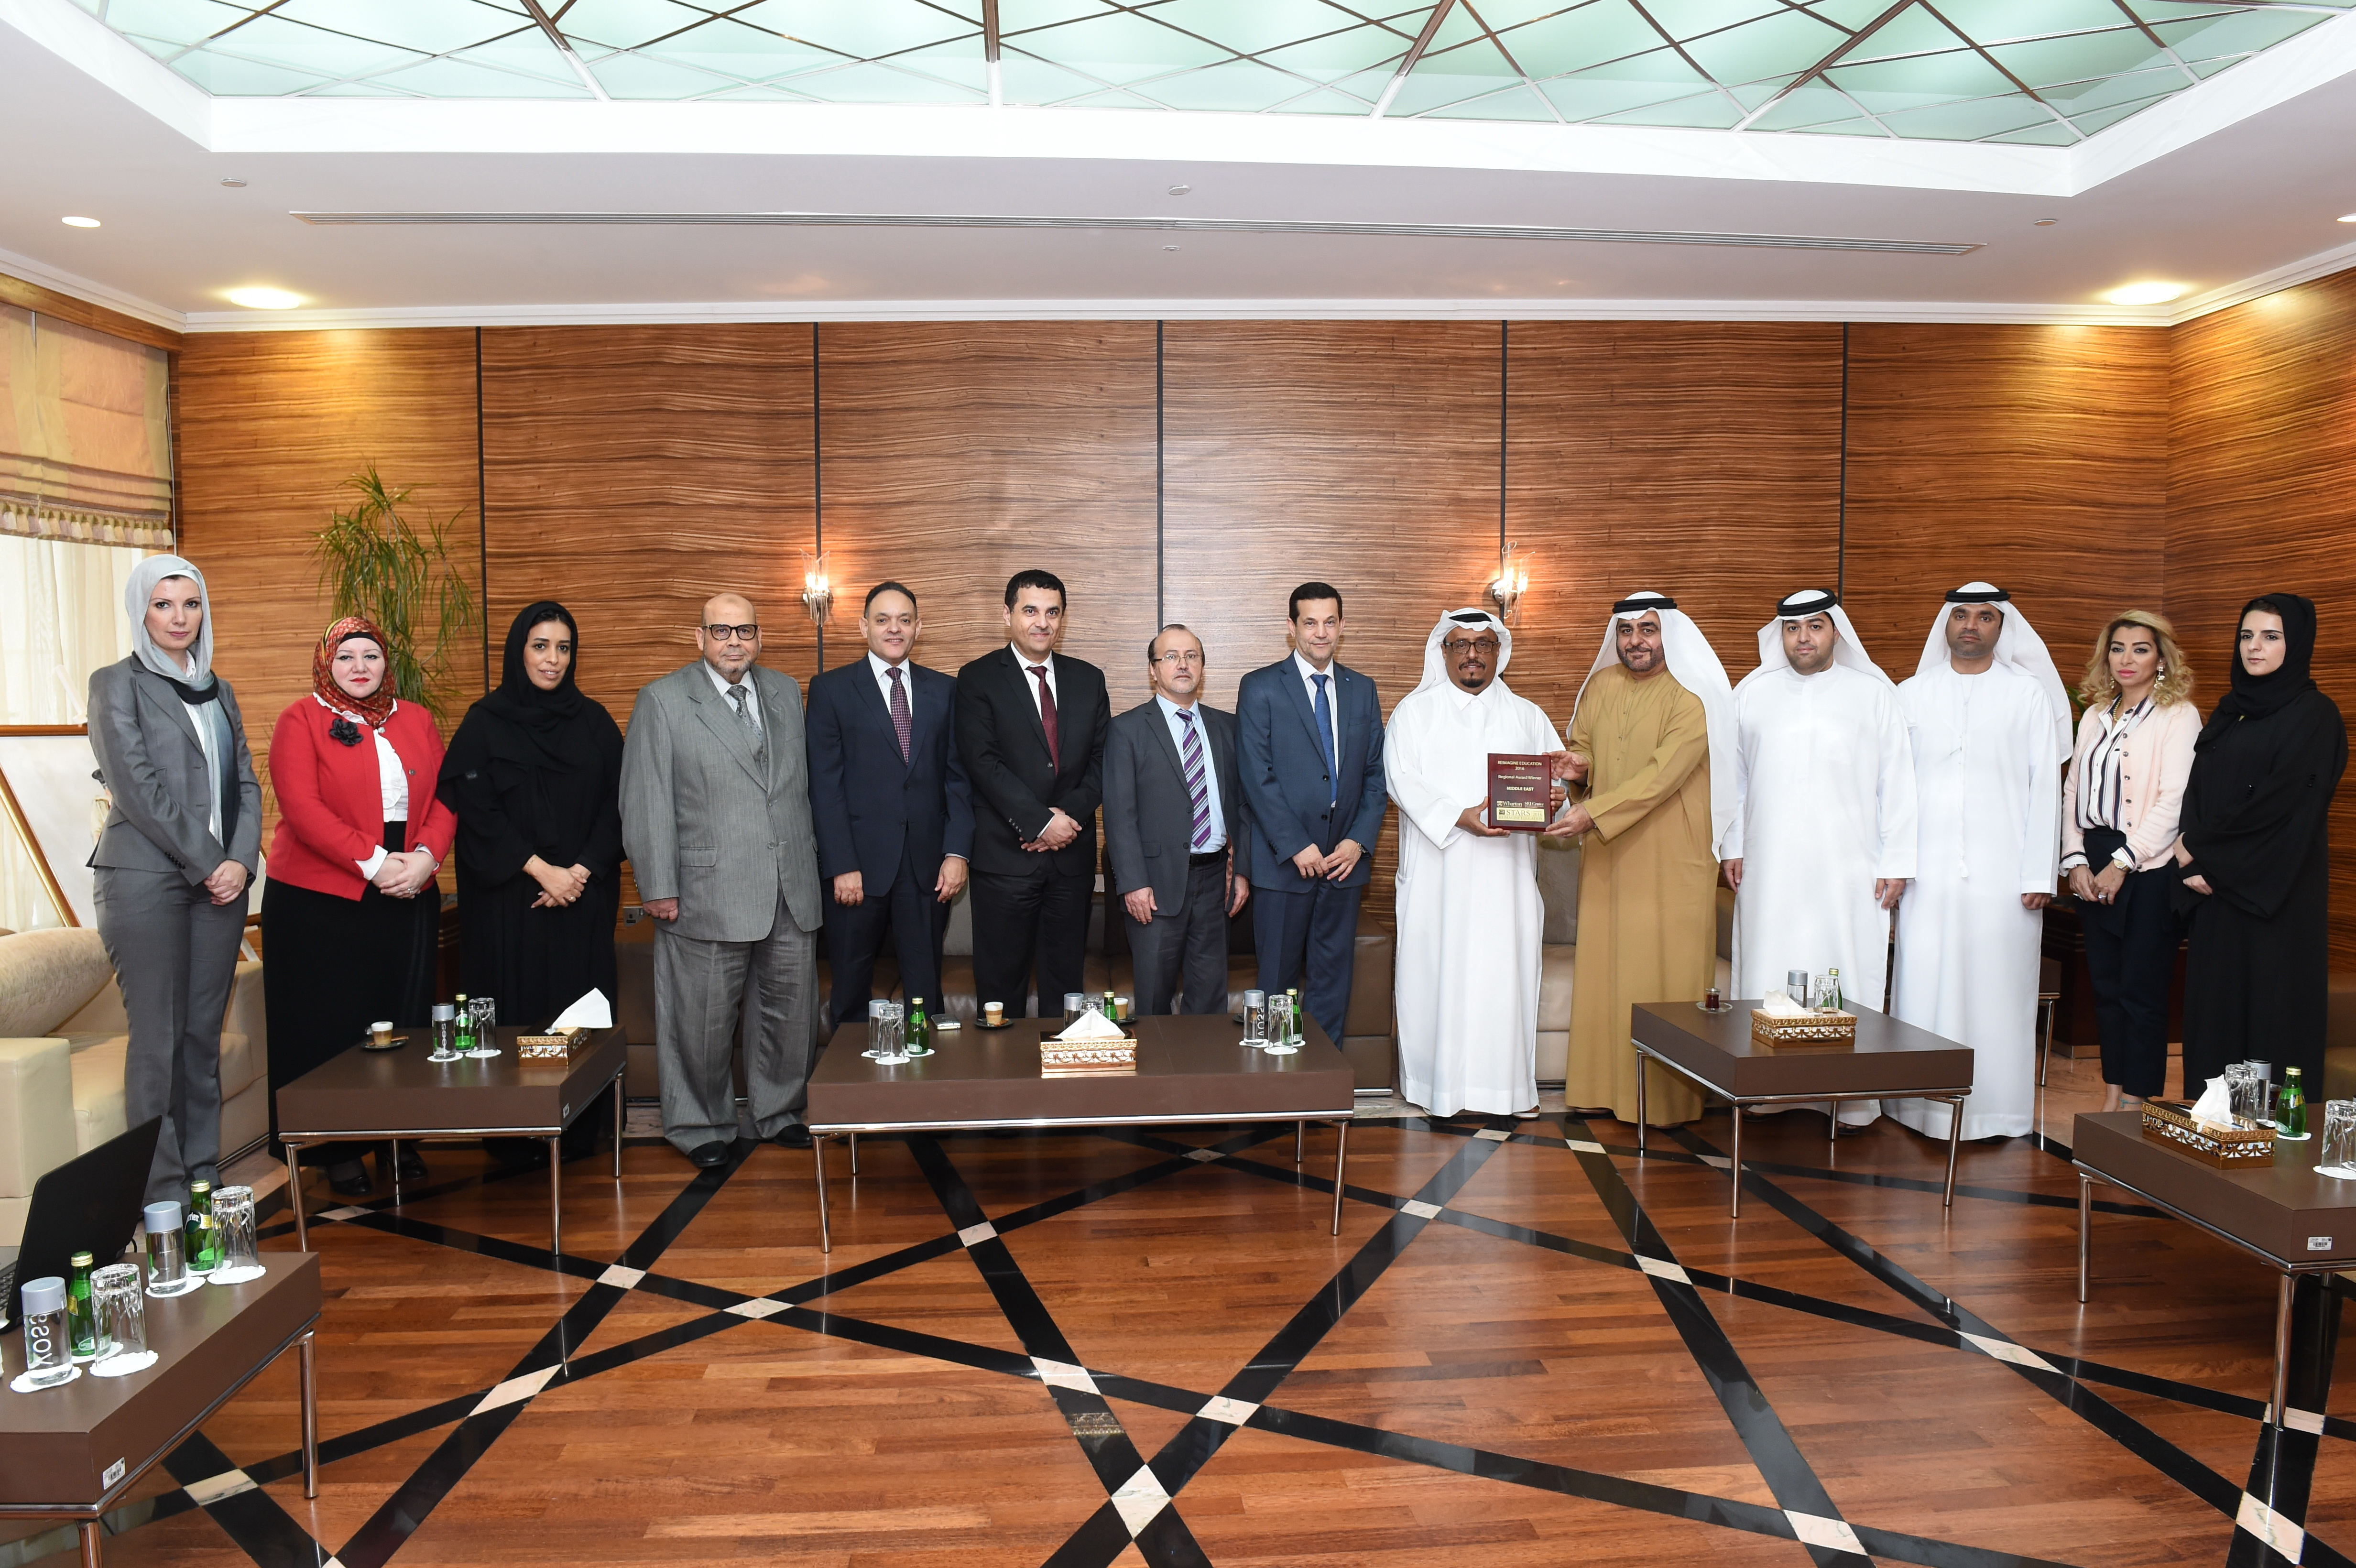 HBMSU becomes first university in Middle East and Africa region to be recognized for ISO 22301 compliance